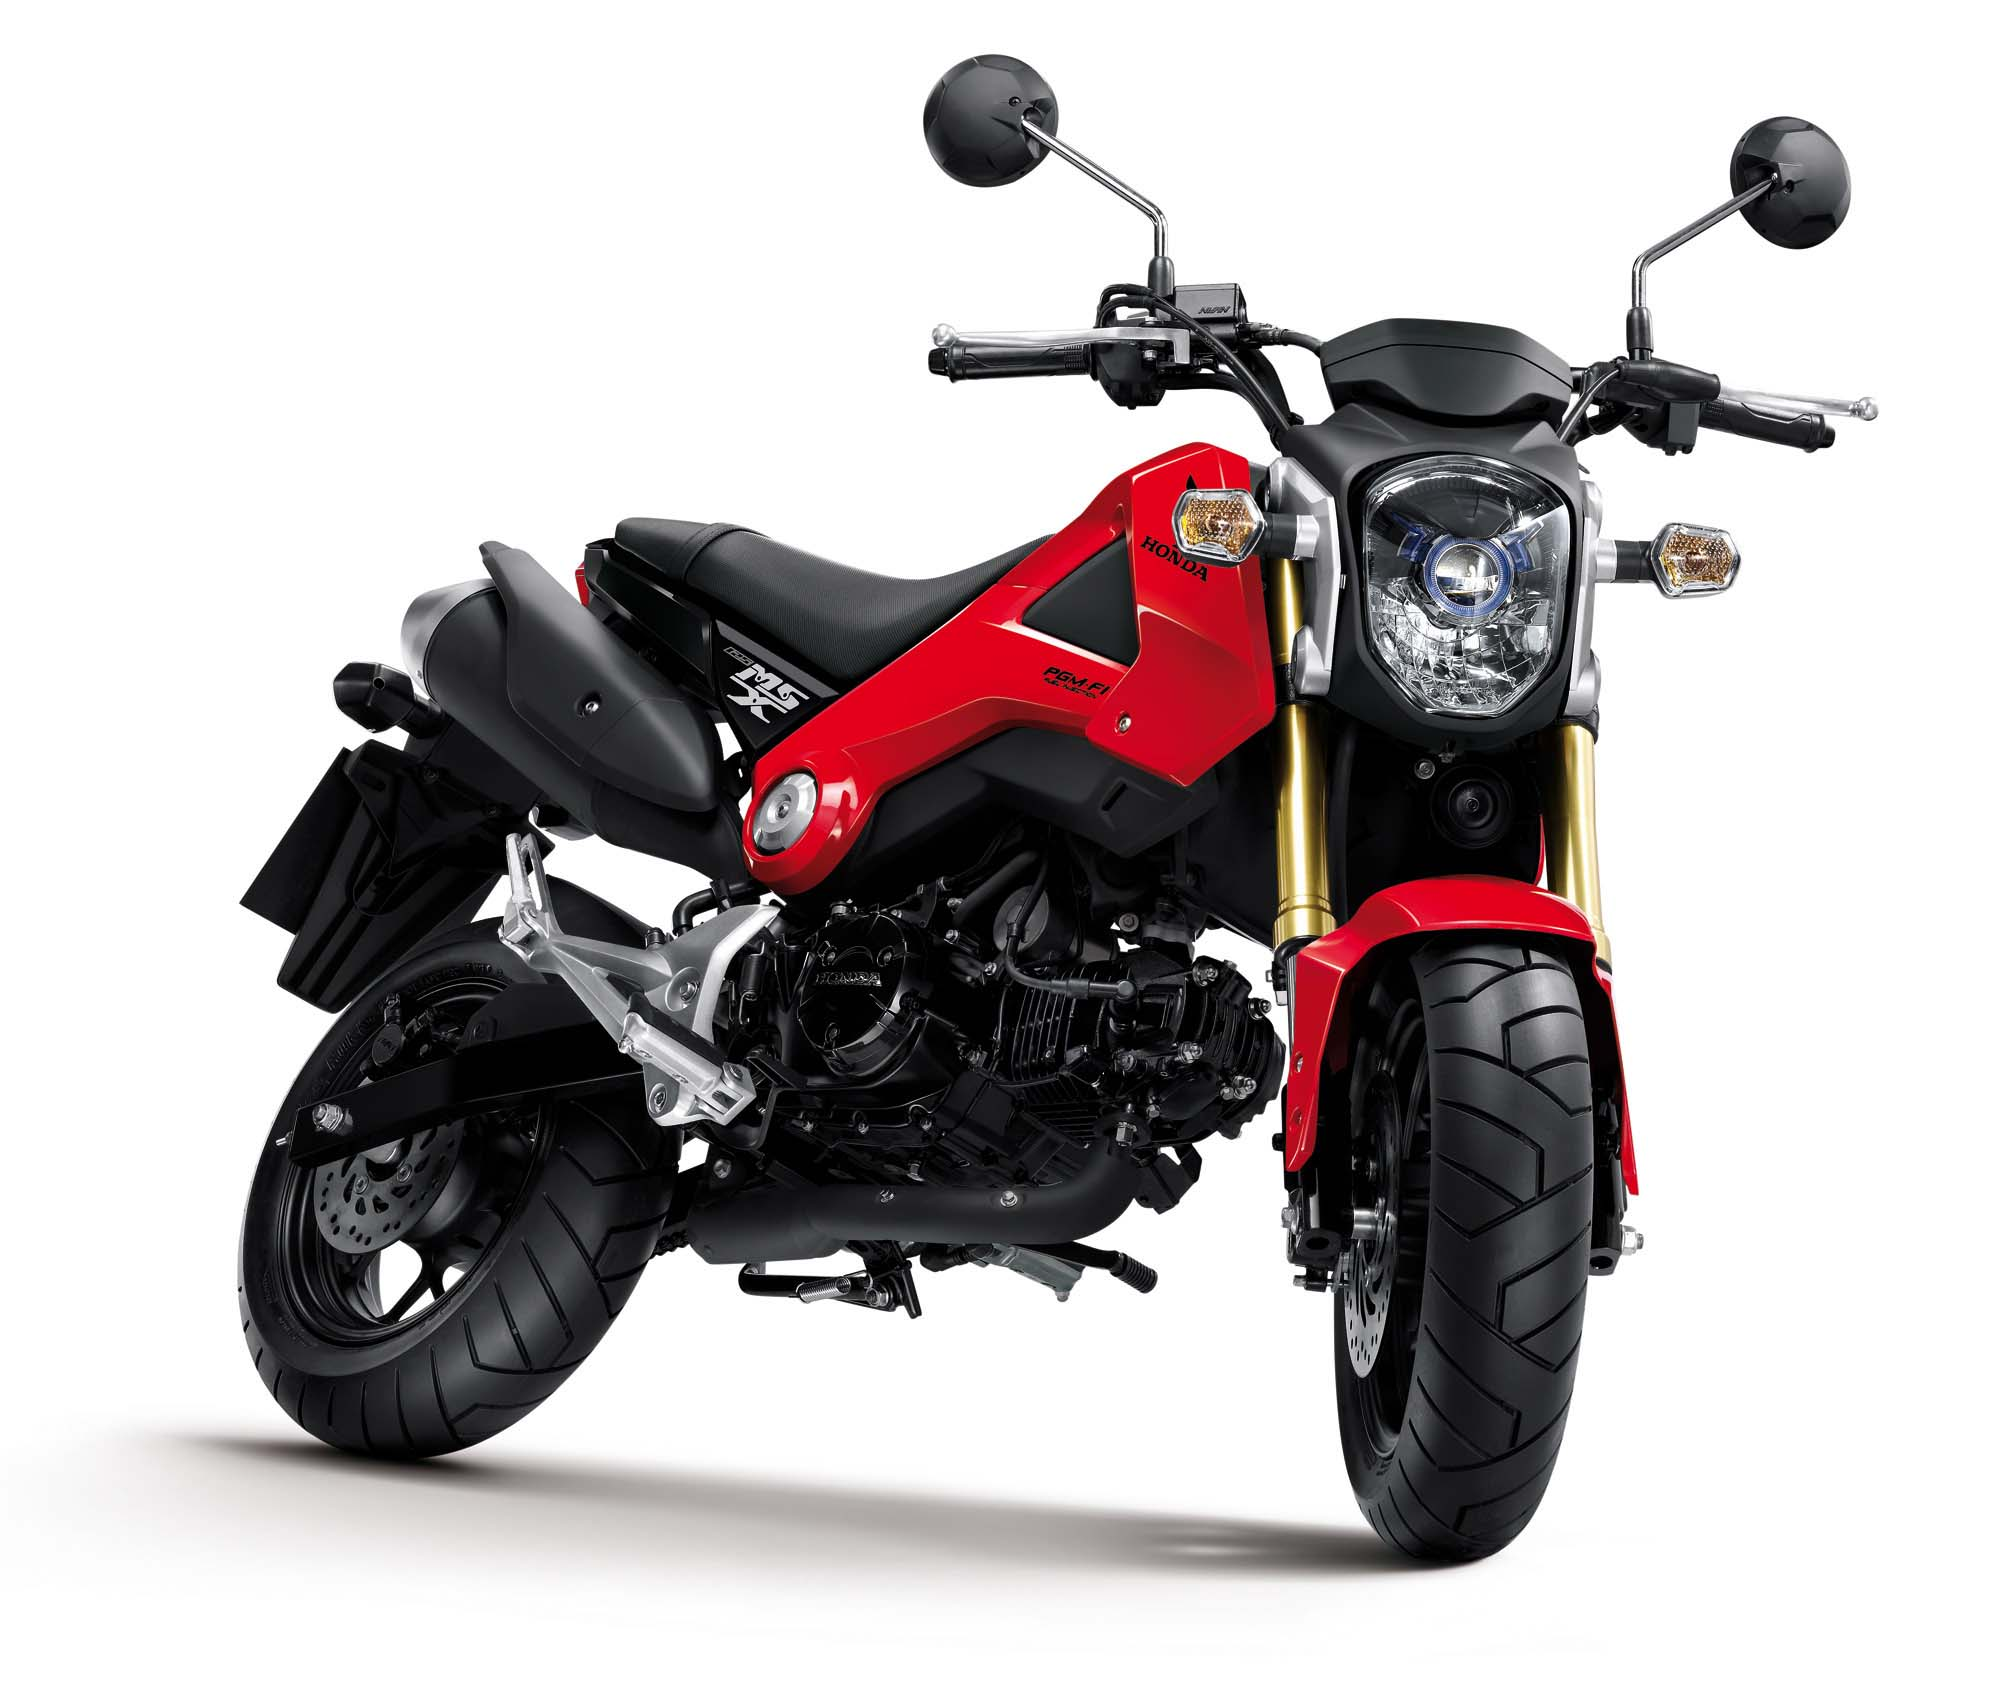 Honda Msx125 Will Make A Monkey Out Of You Asphalt Amp Rubber